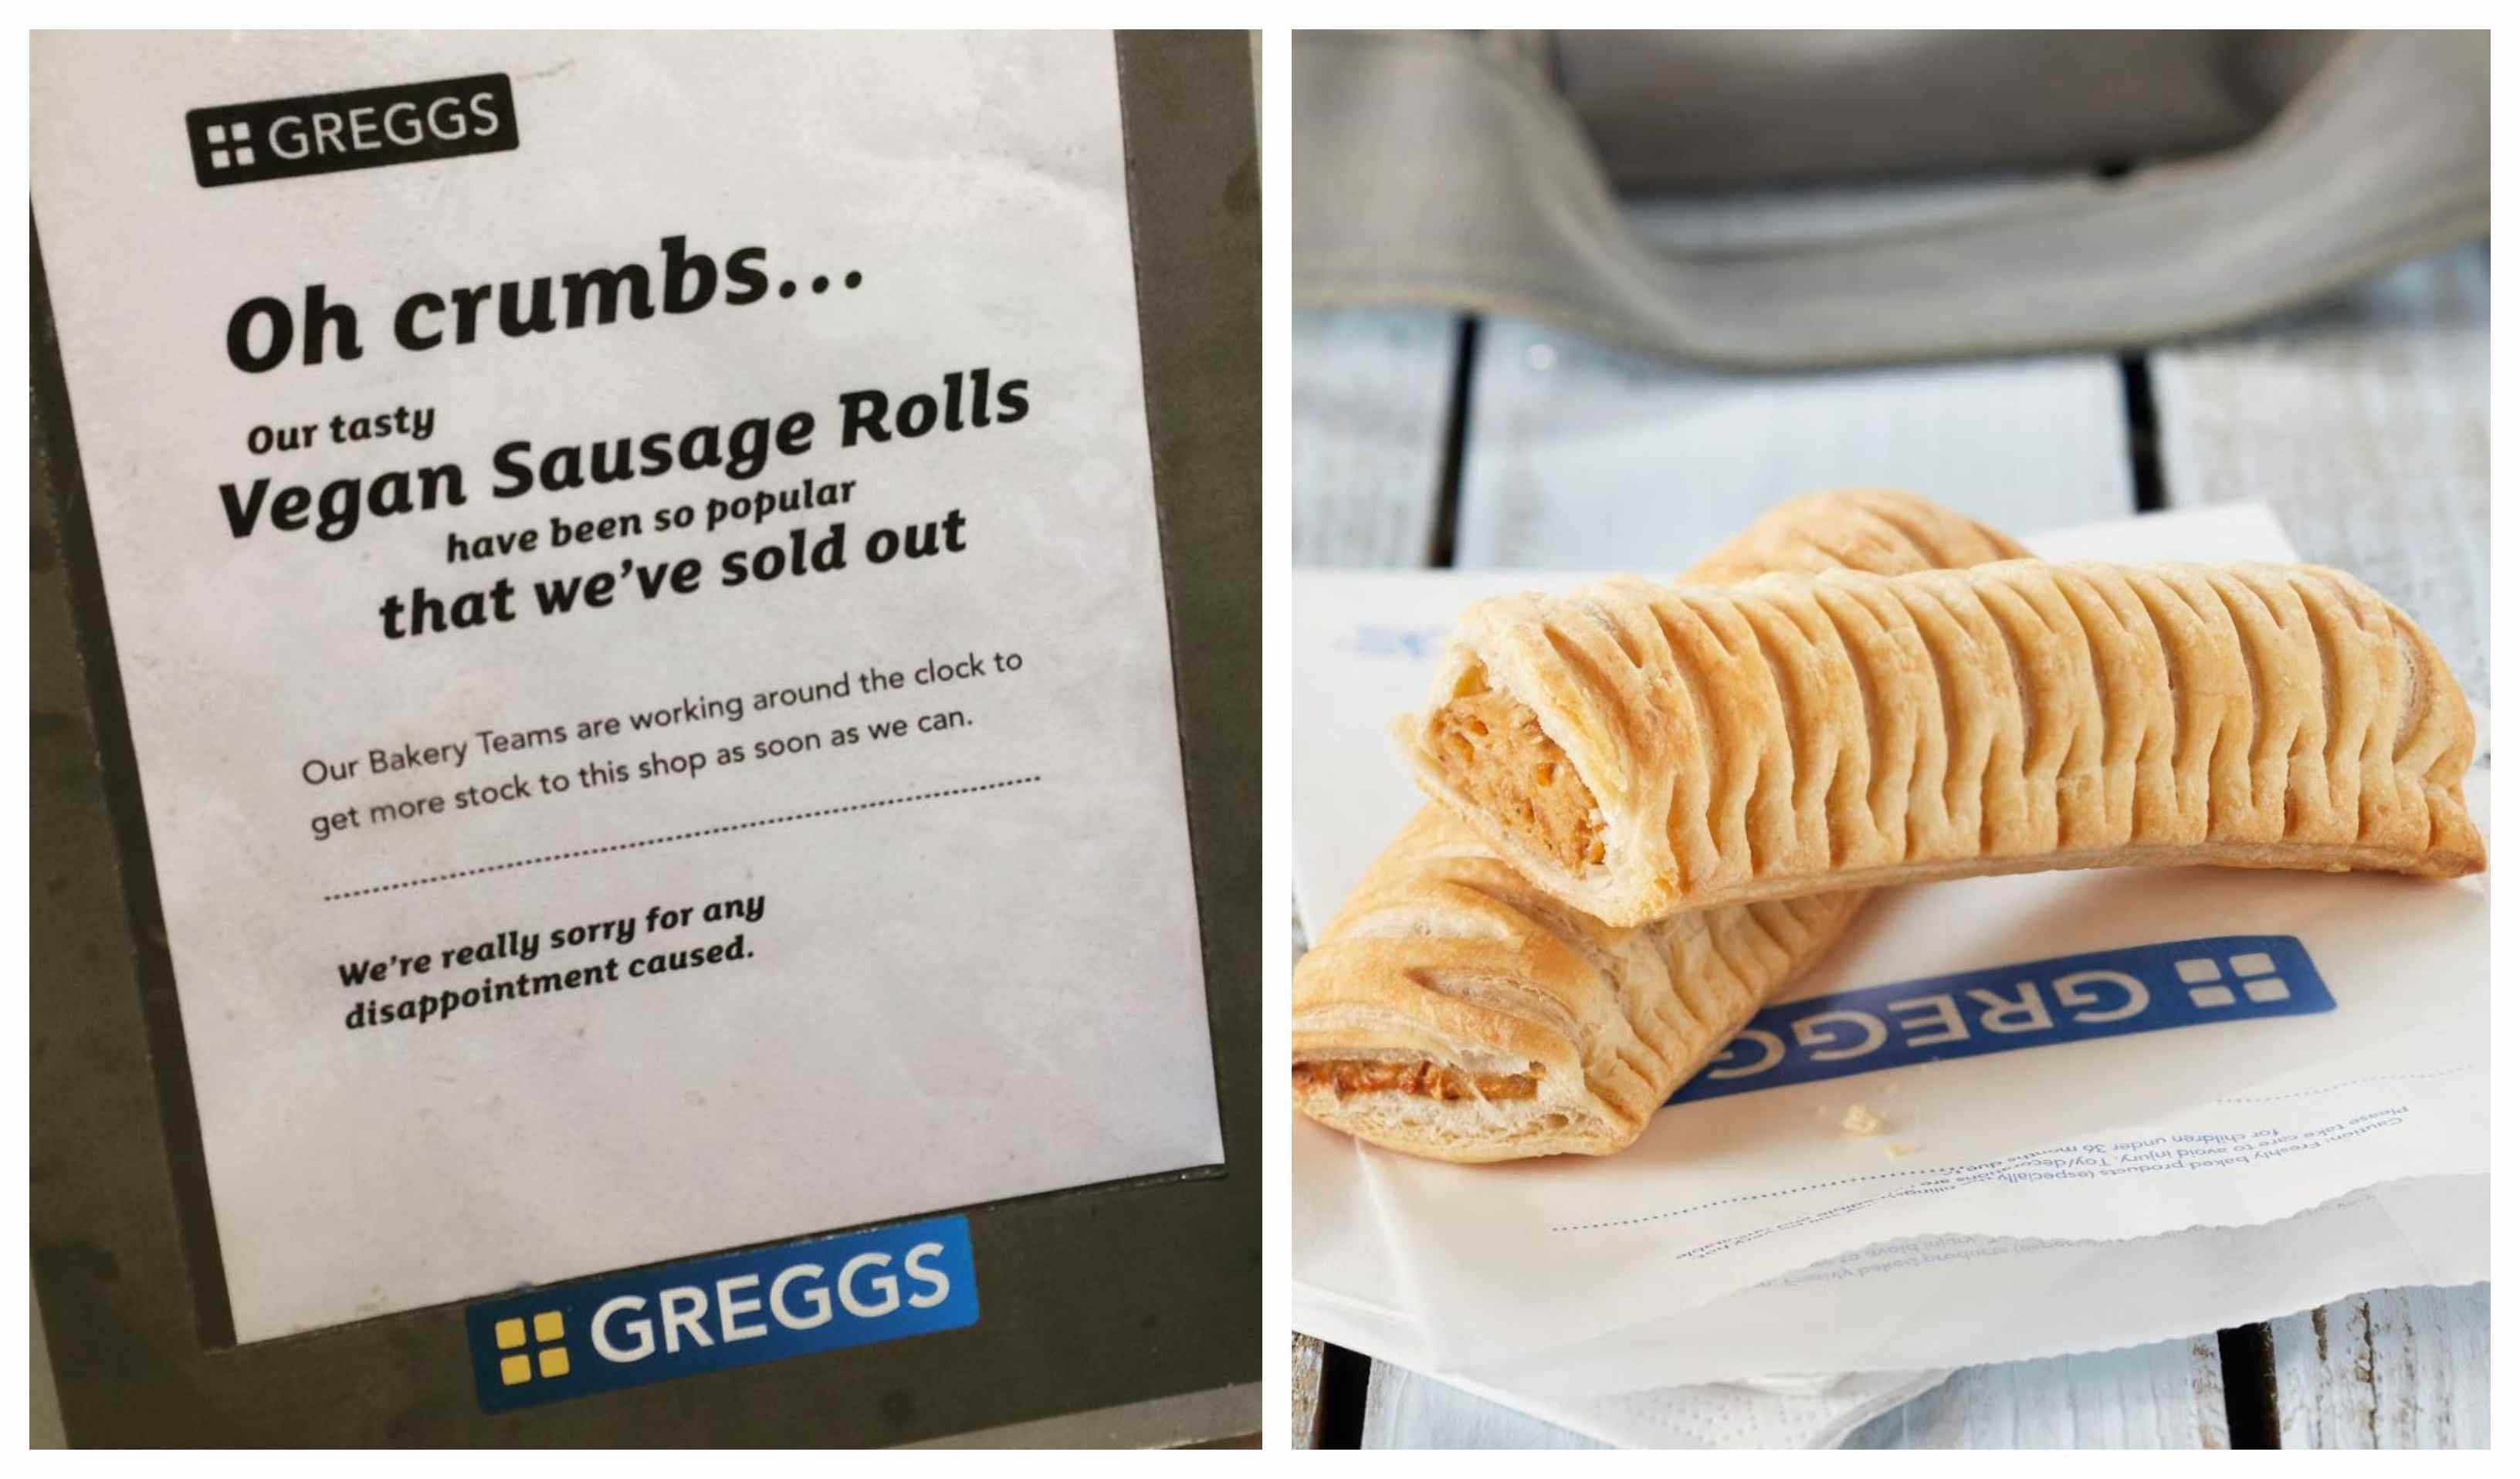 Greggs vegan sausage roll sold out